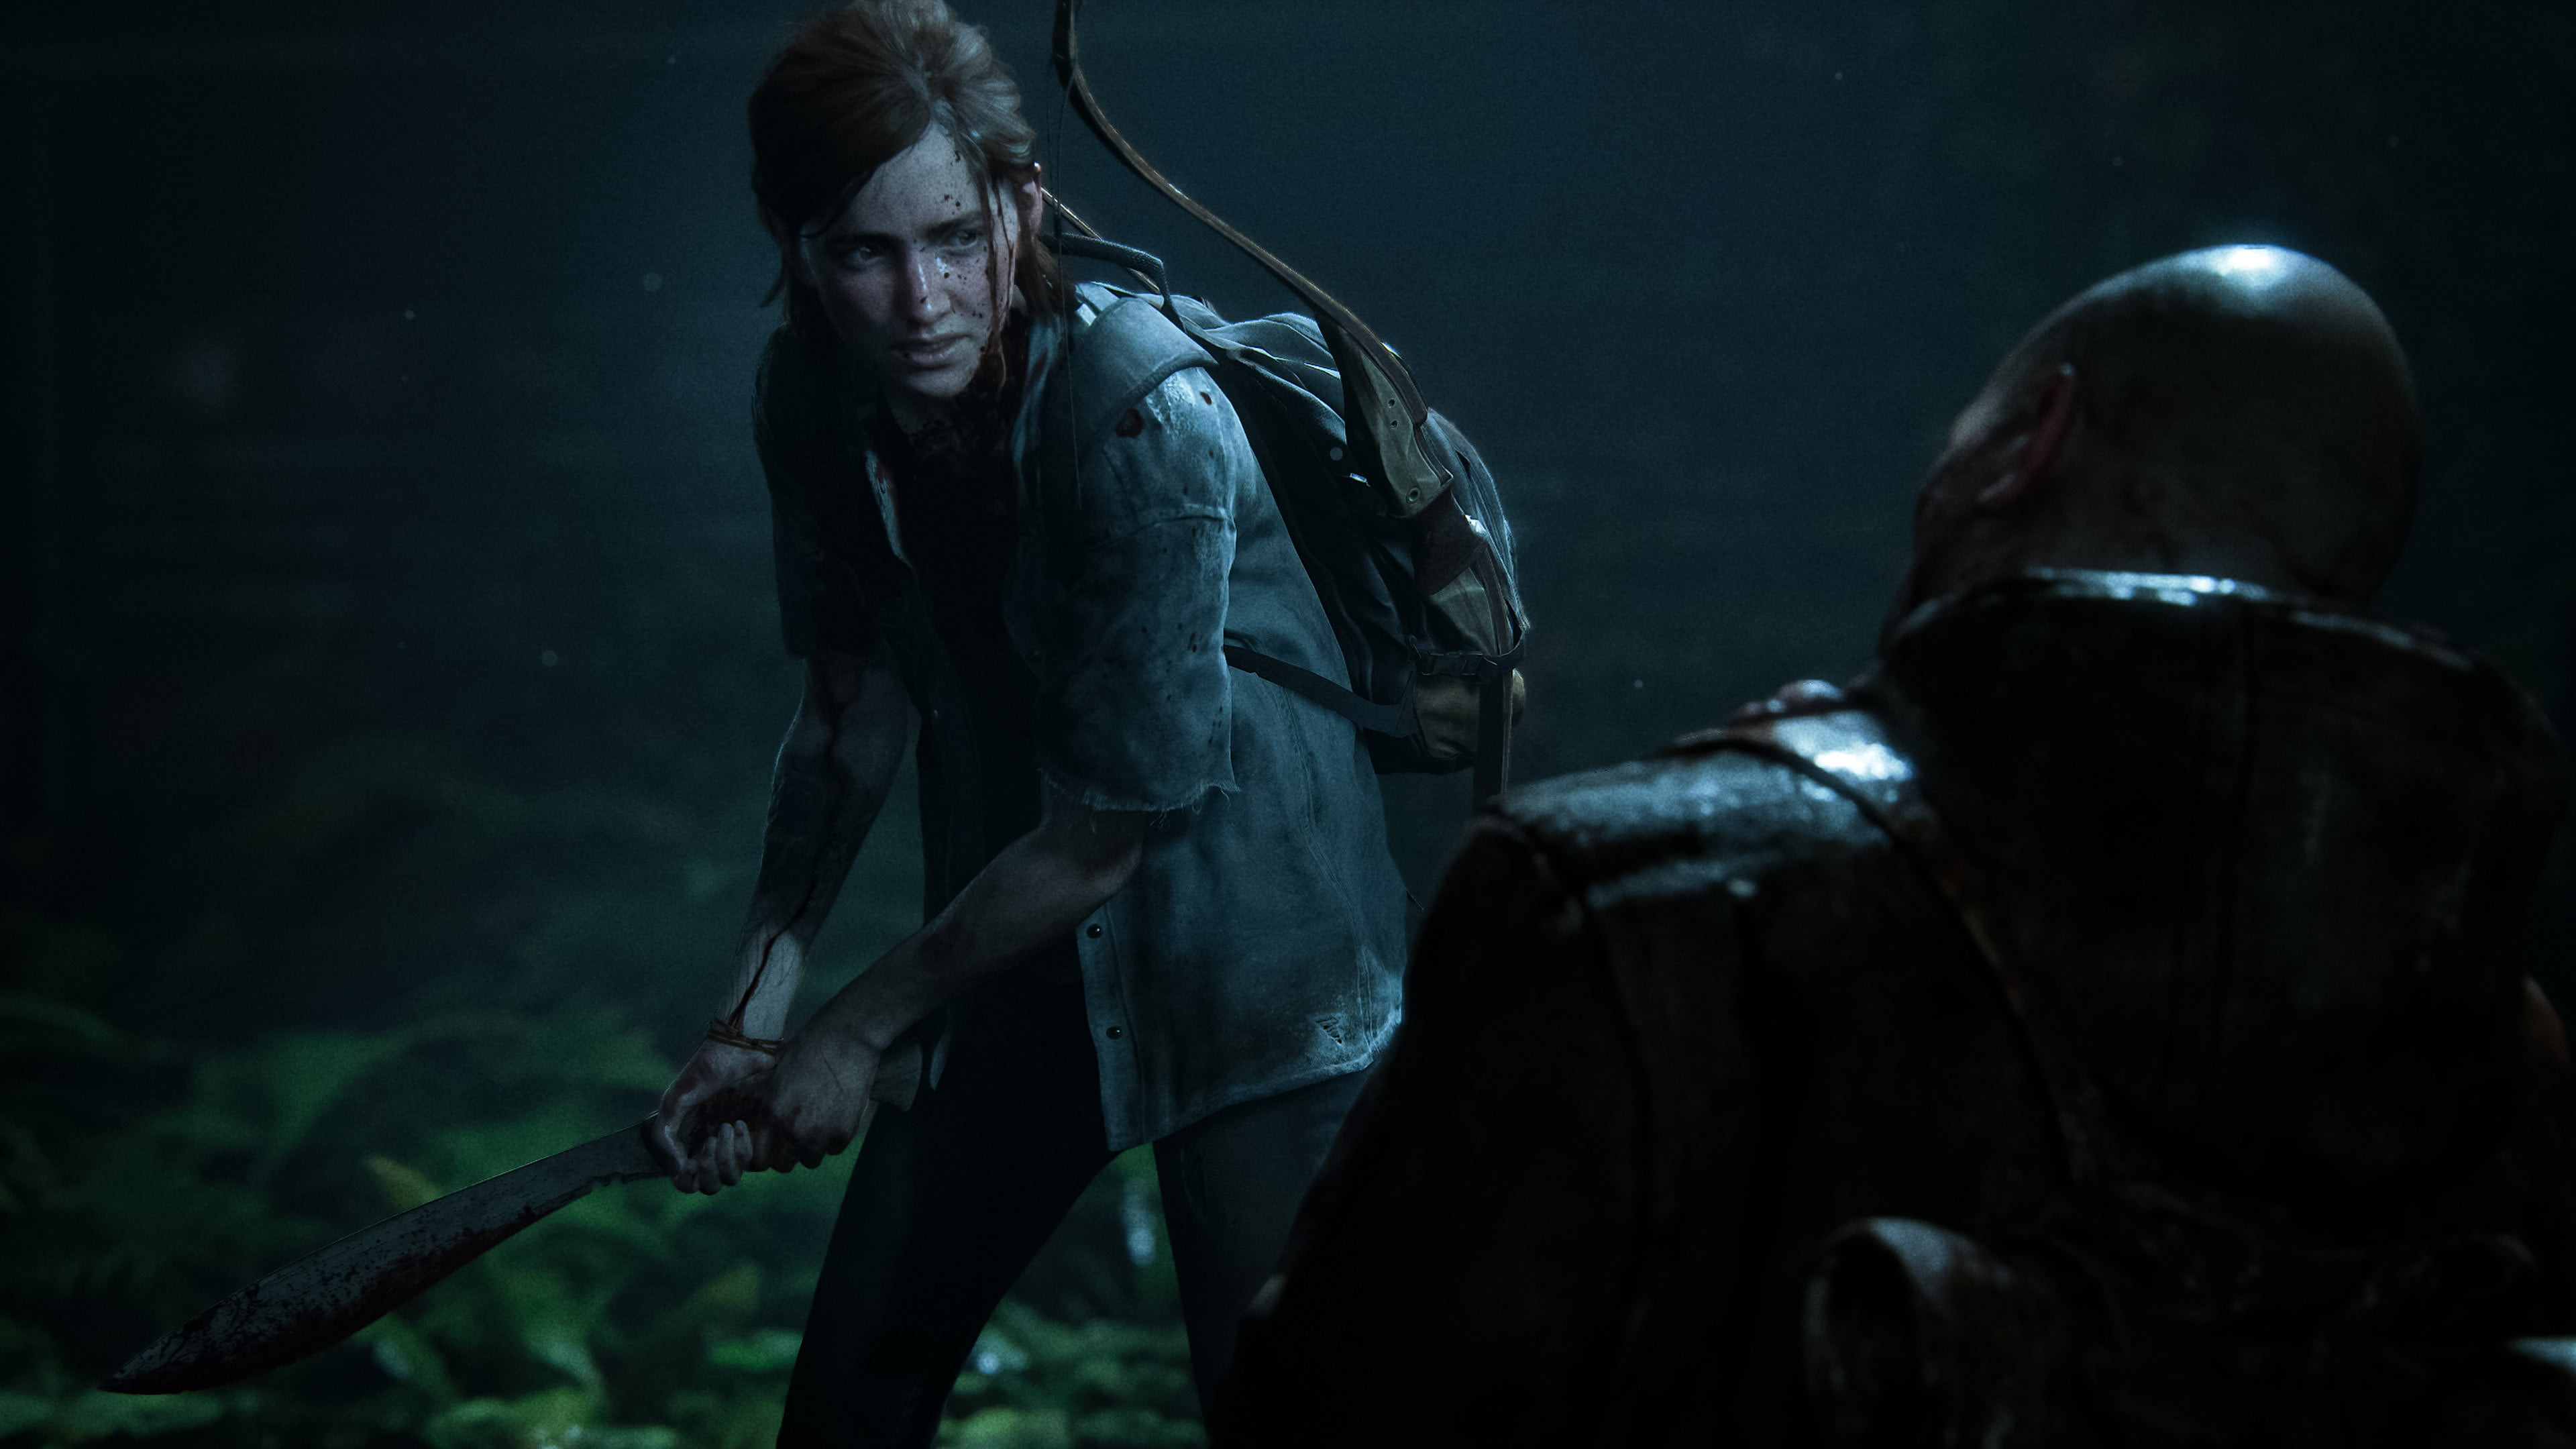 Neil Druckmann: The Last of Us Part II's Final Scene Has Officially Been Shot